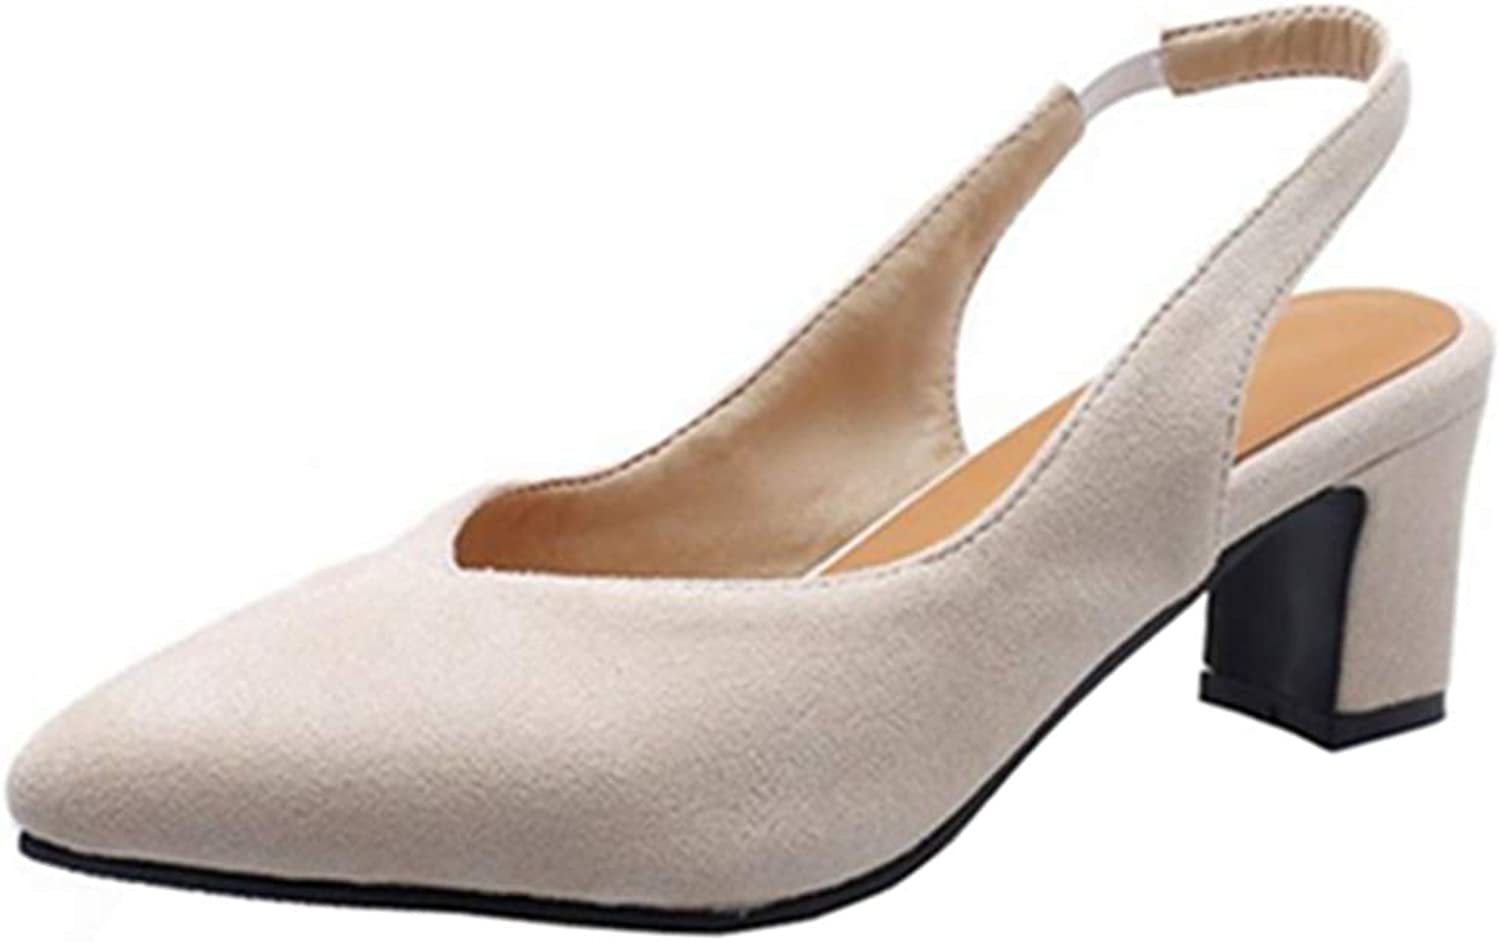 Cocey Women Casual Pumps with Open Back